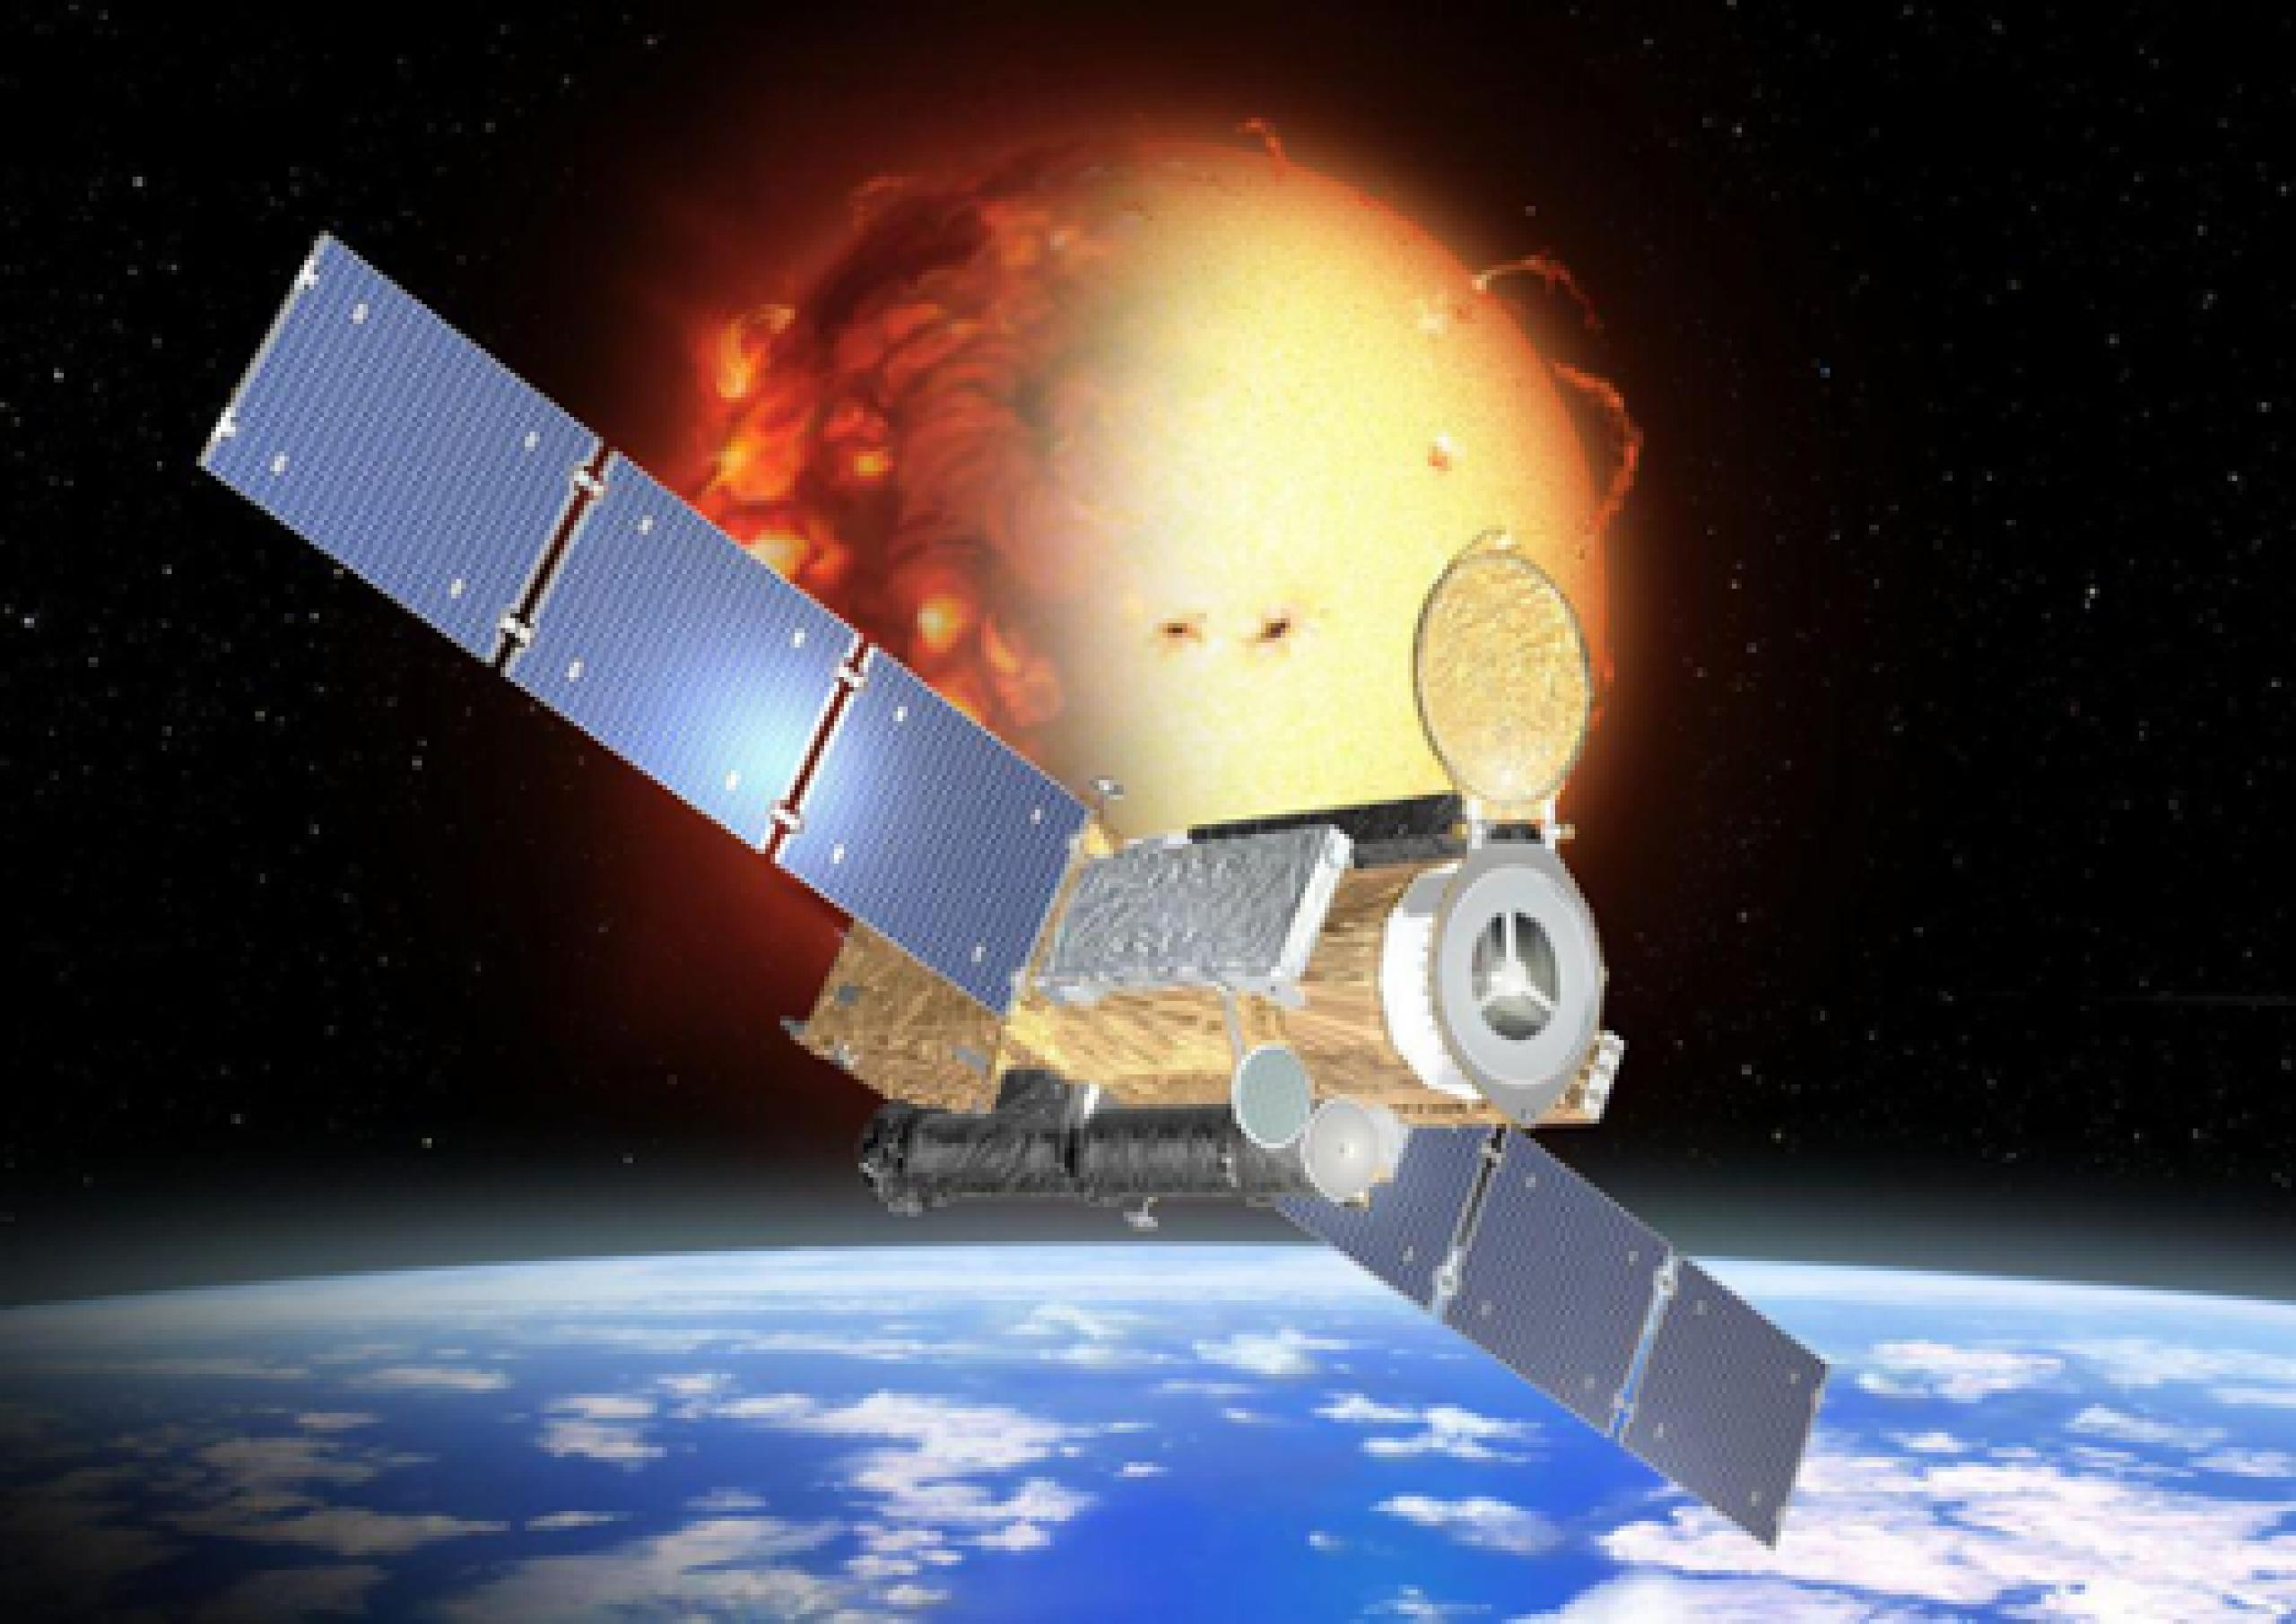 Artist concept of satellite in orbit above the Earth with the Sun in the background